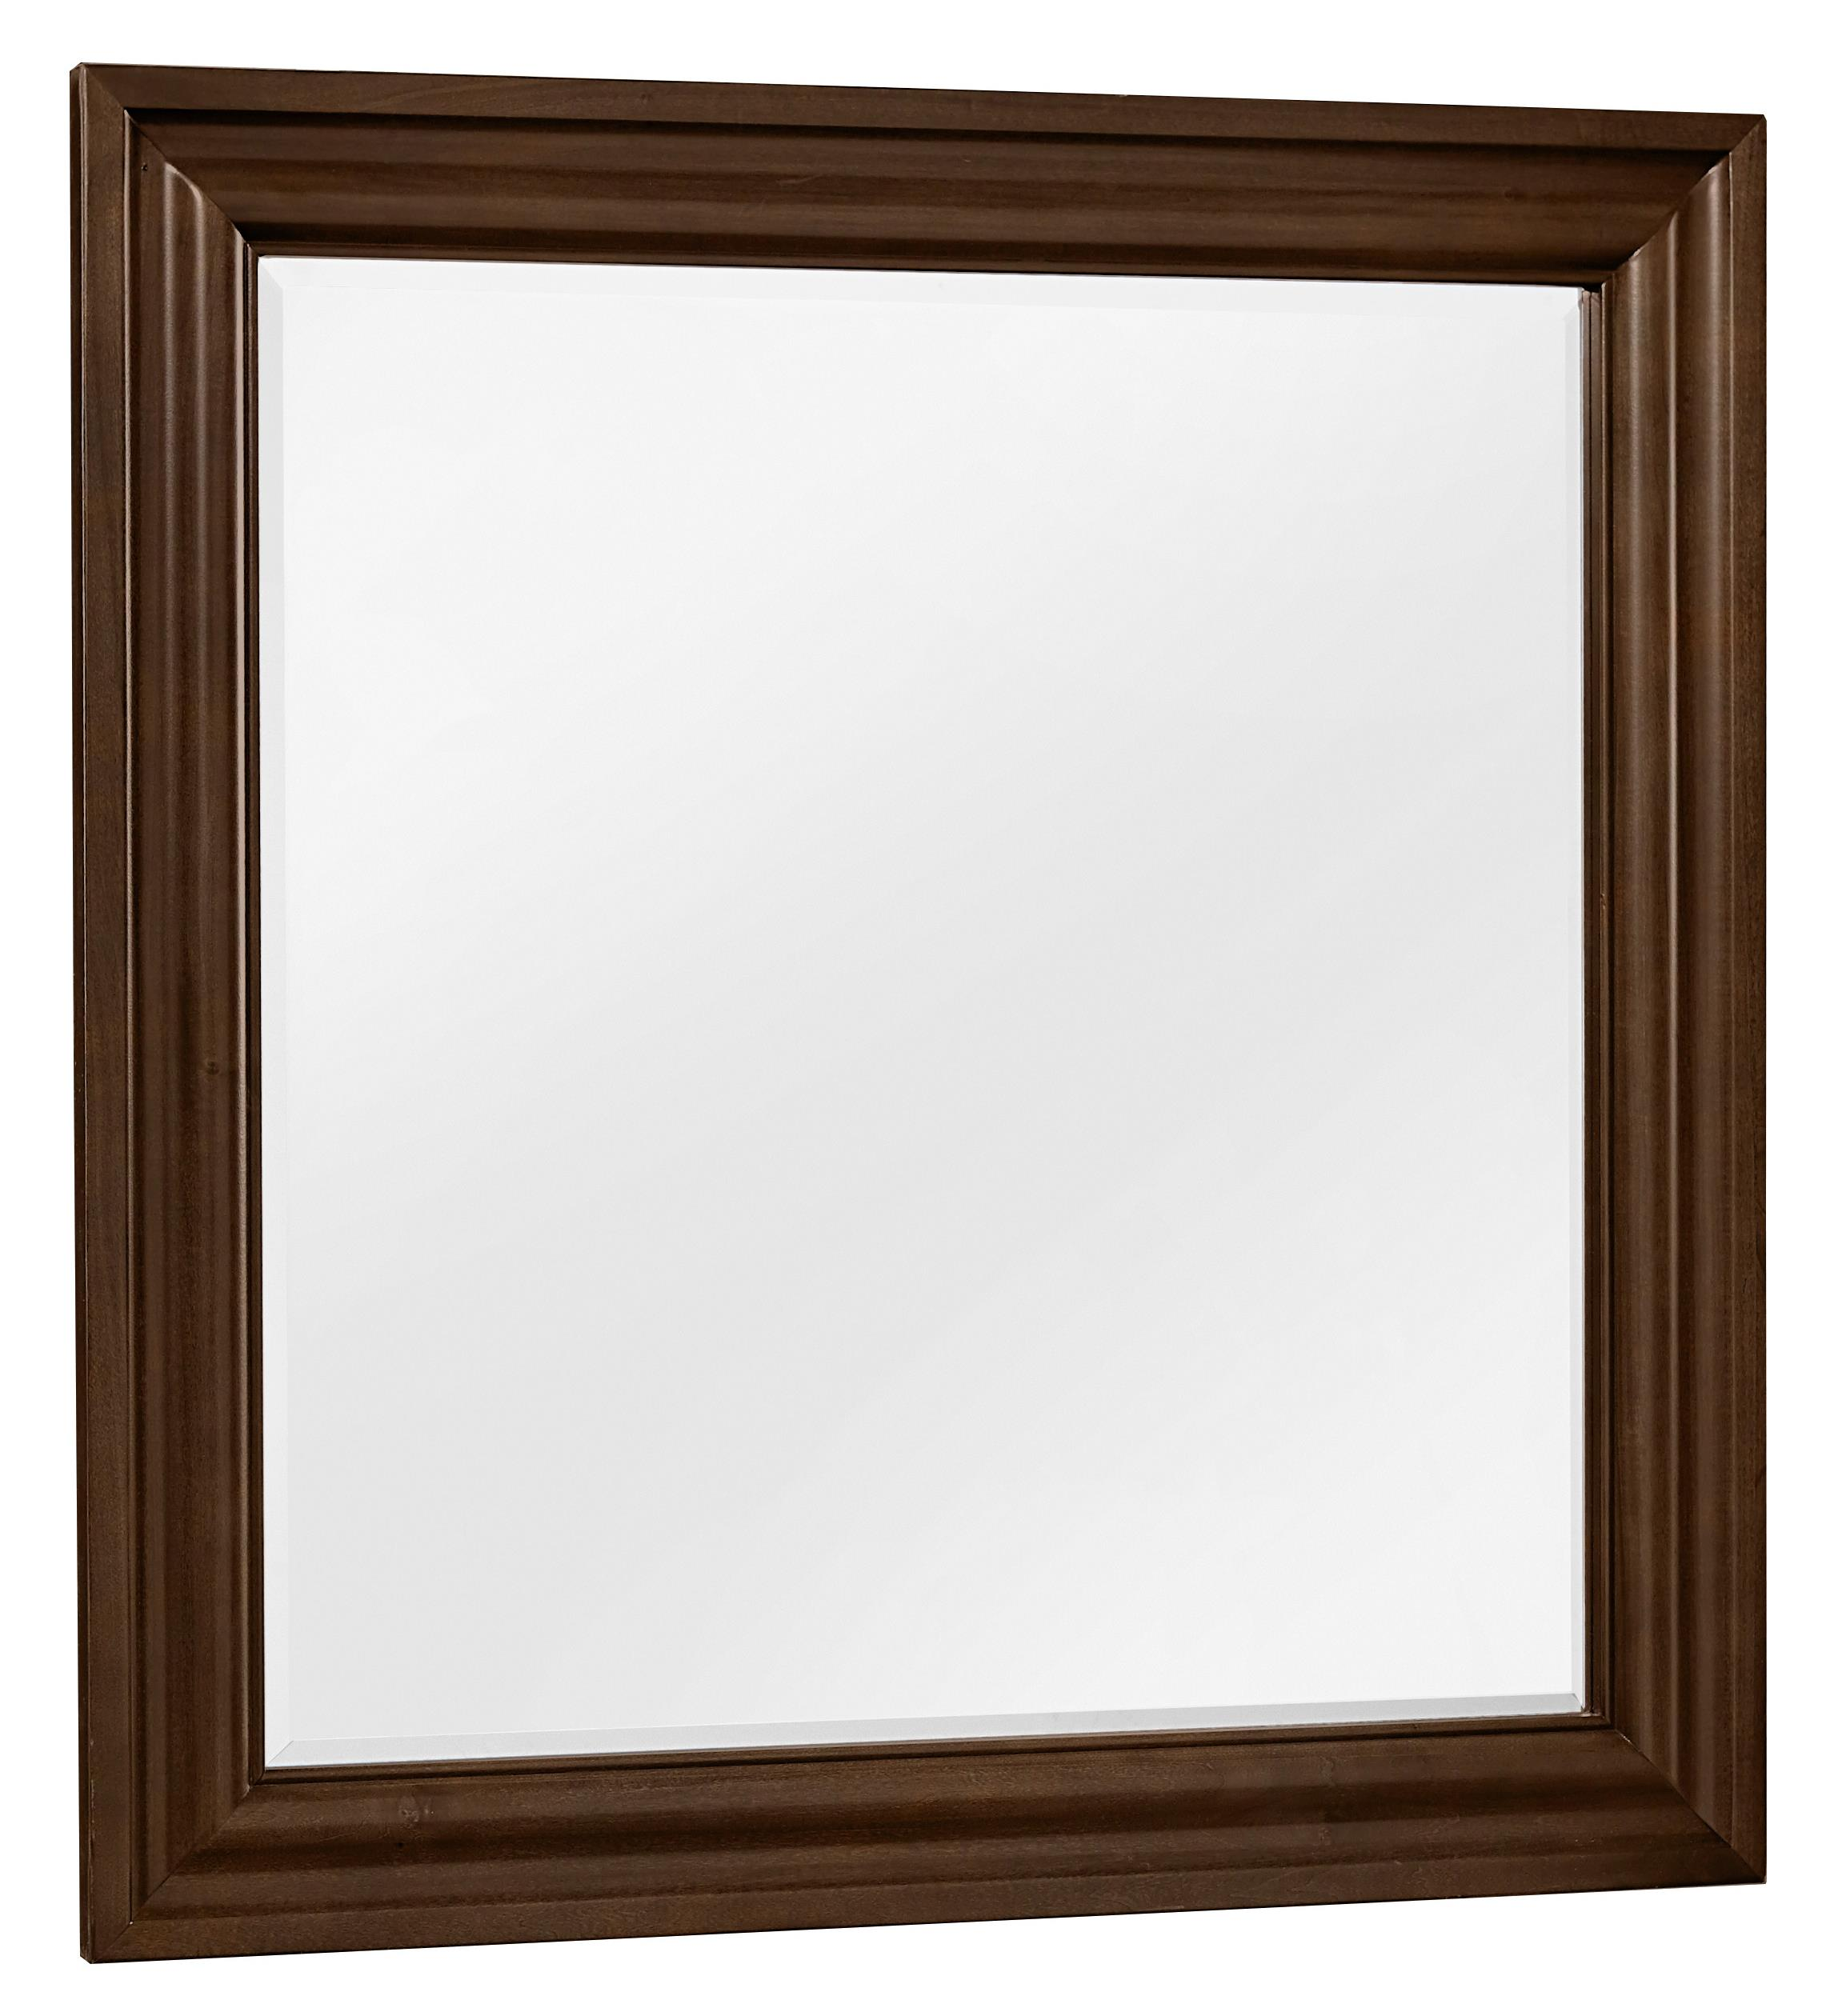 Vaughan Bassett French Market Landscape Mirror - Item Number: 382-446